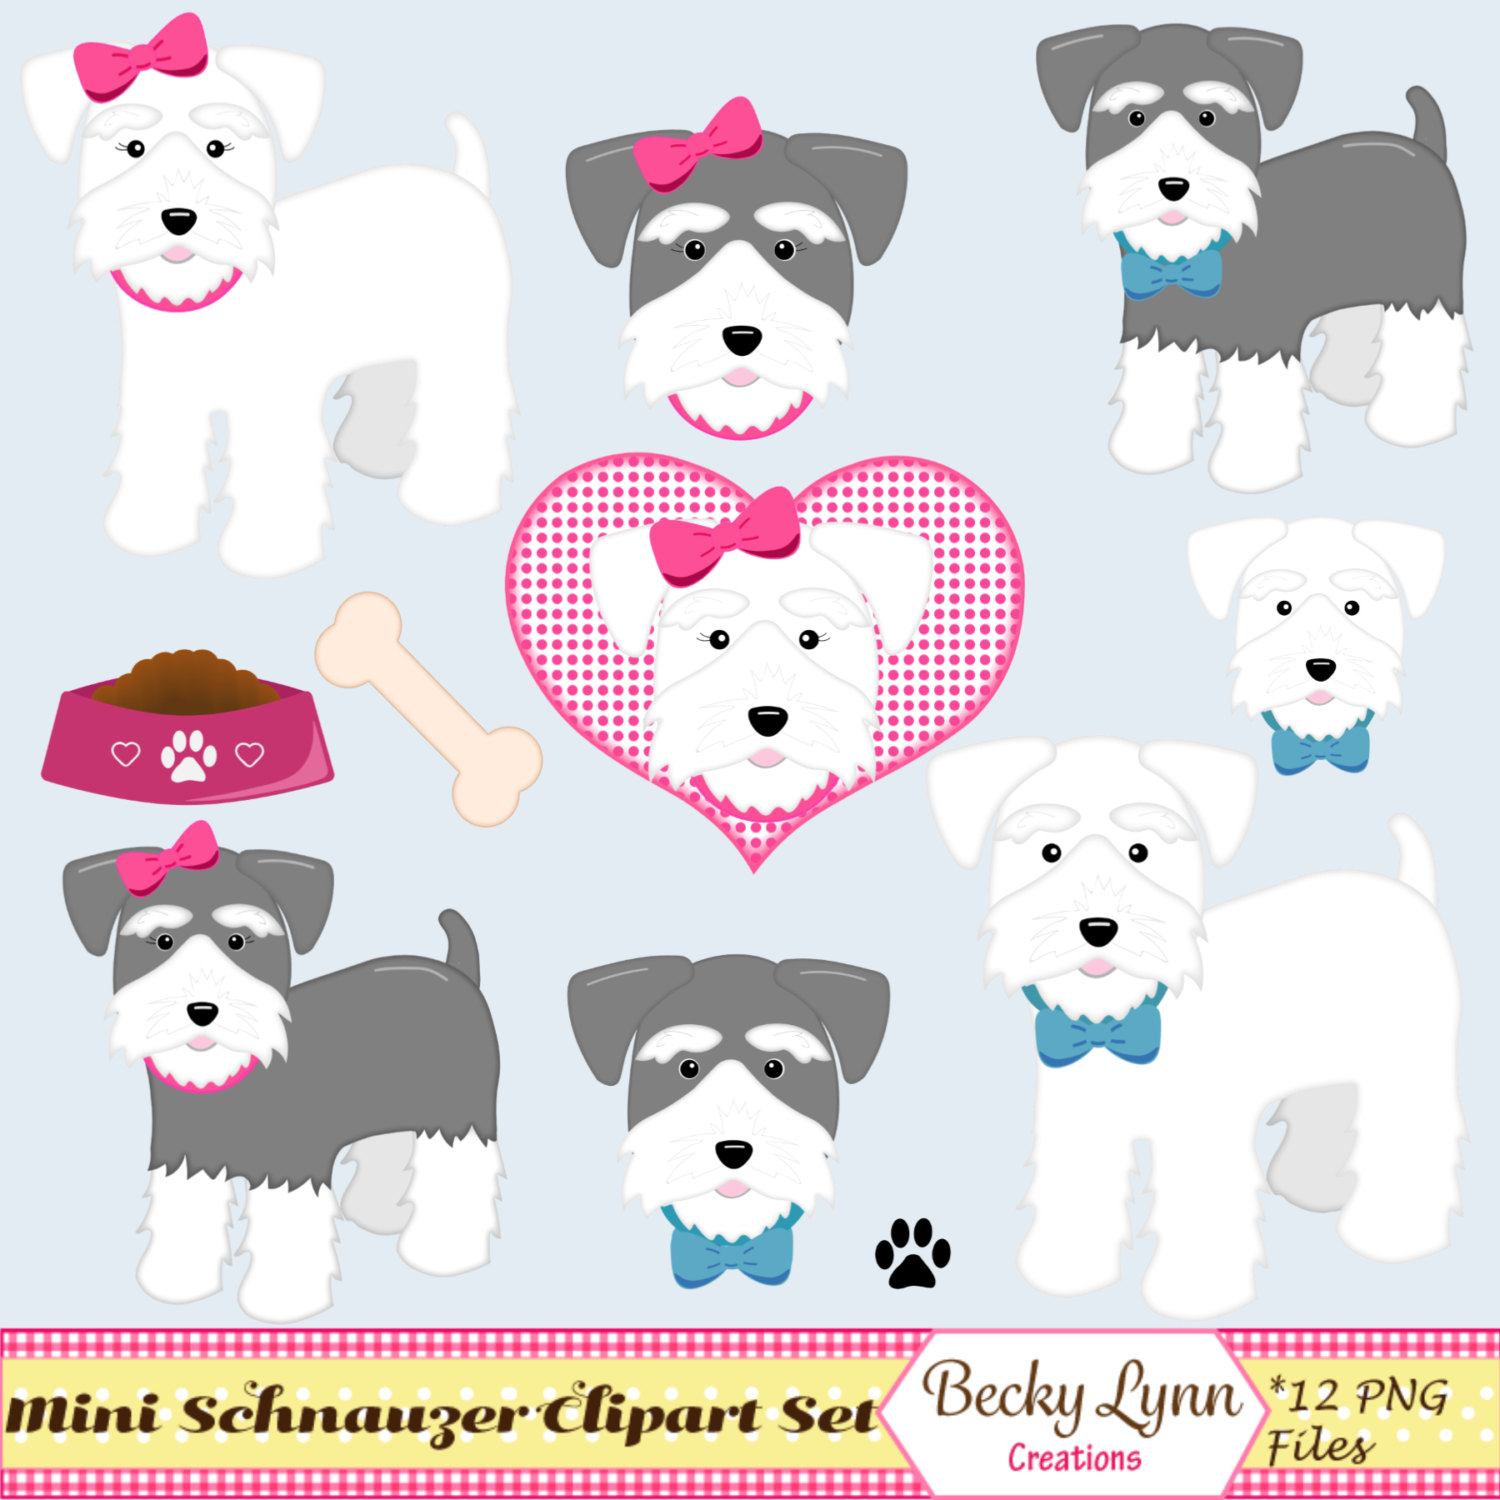 Schnauzer clipart #17, Download drawings